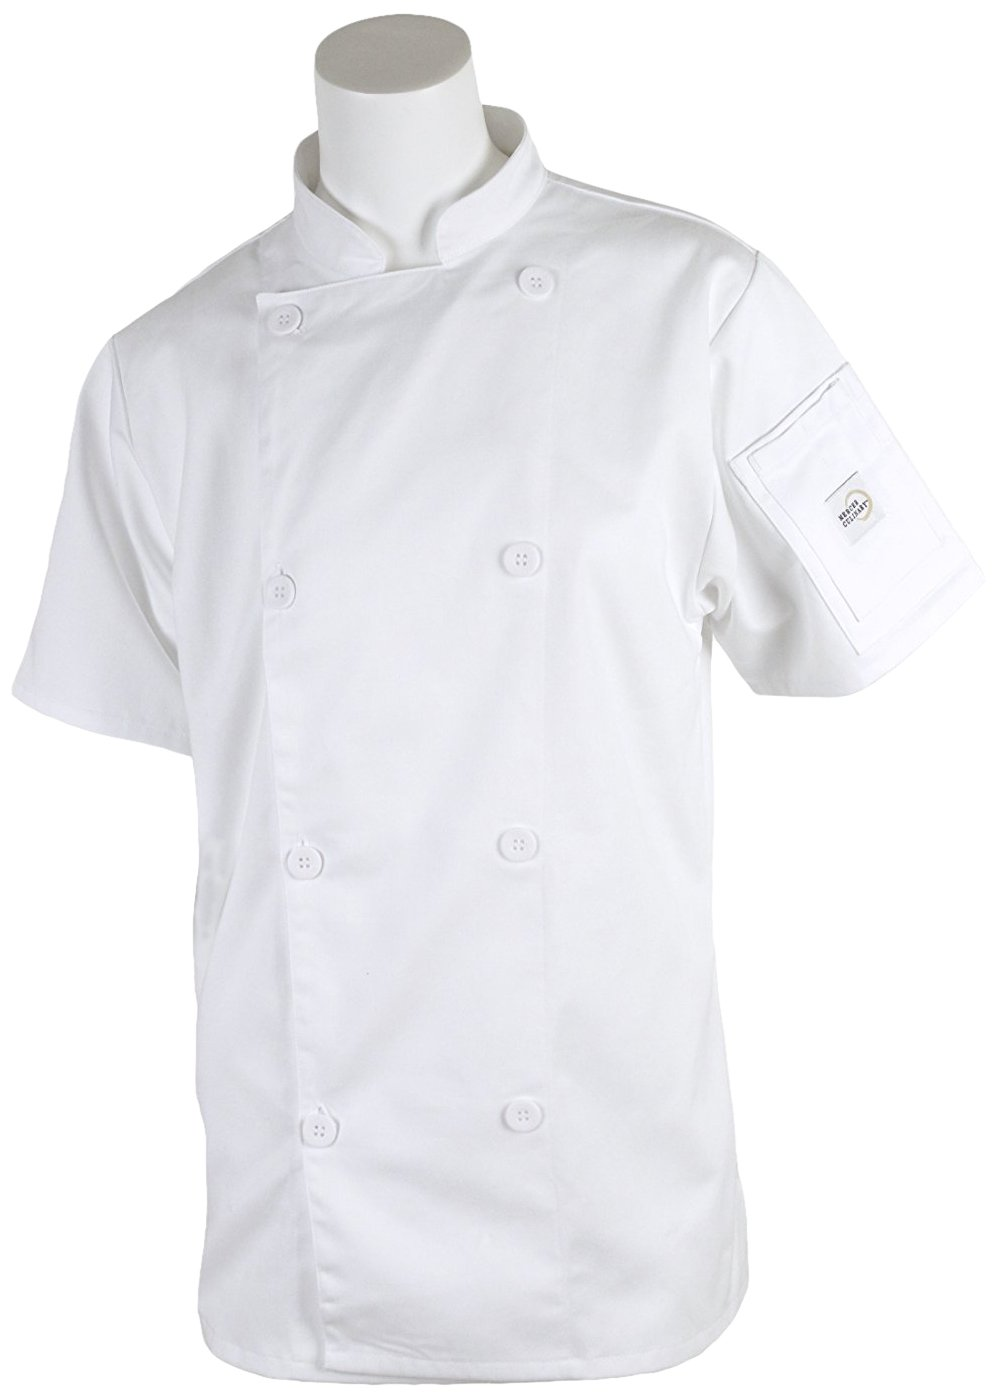 Mercer Culinary M61032WHS Genesis Women's Short Sleeve Chef Jacket with Traditional Buttons, Small, White